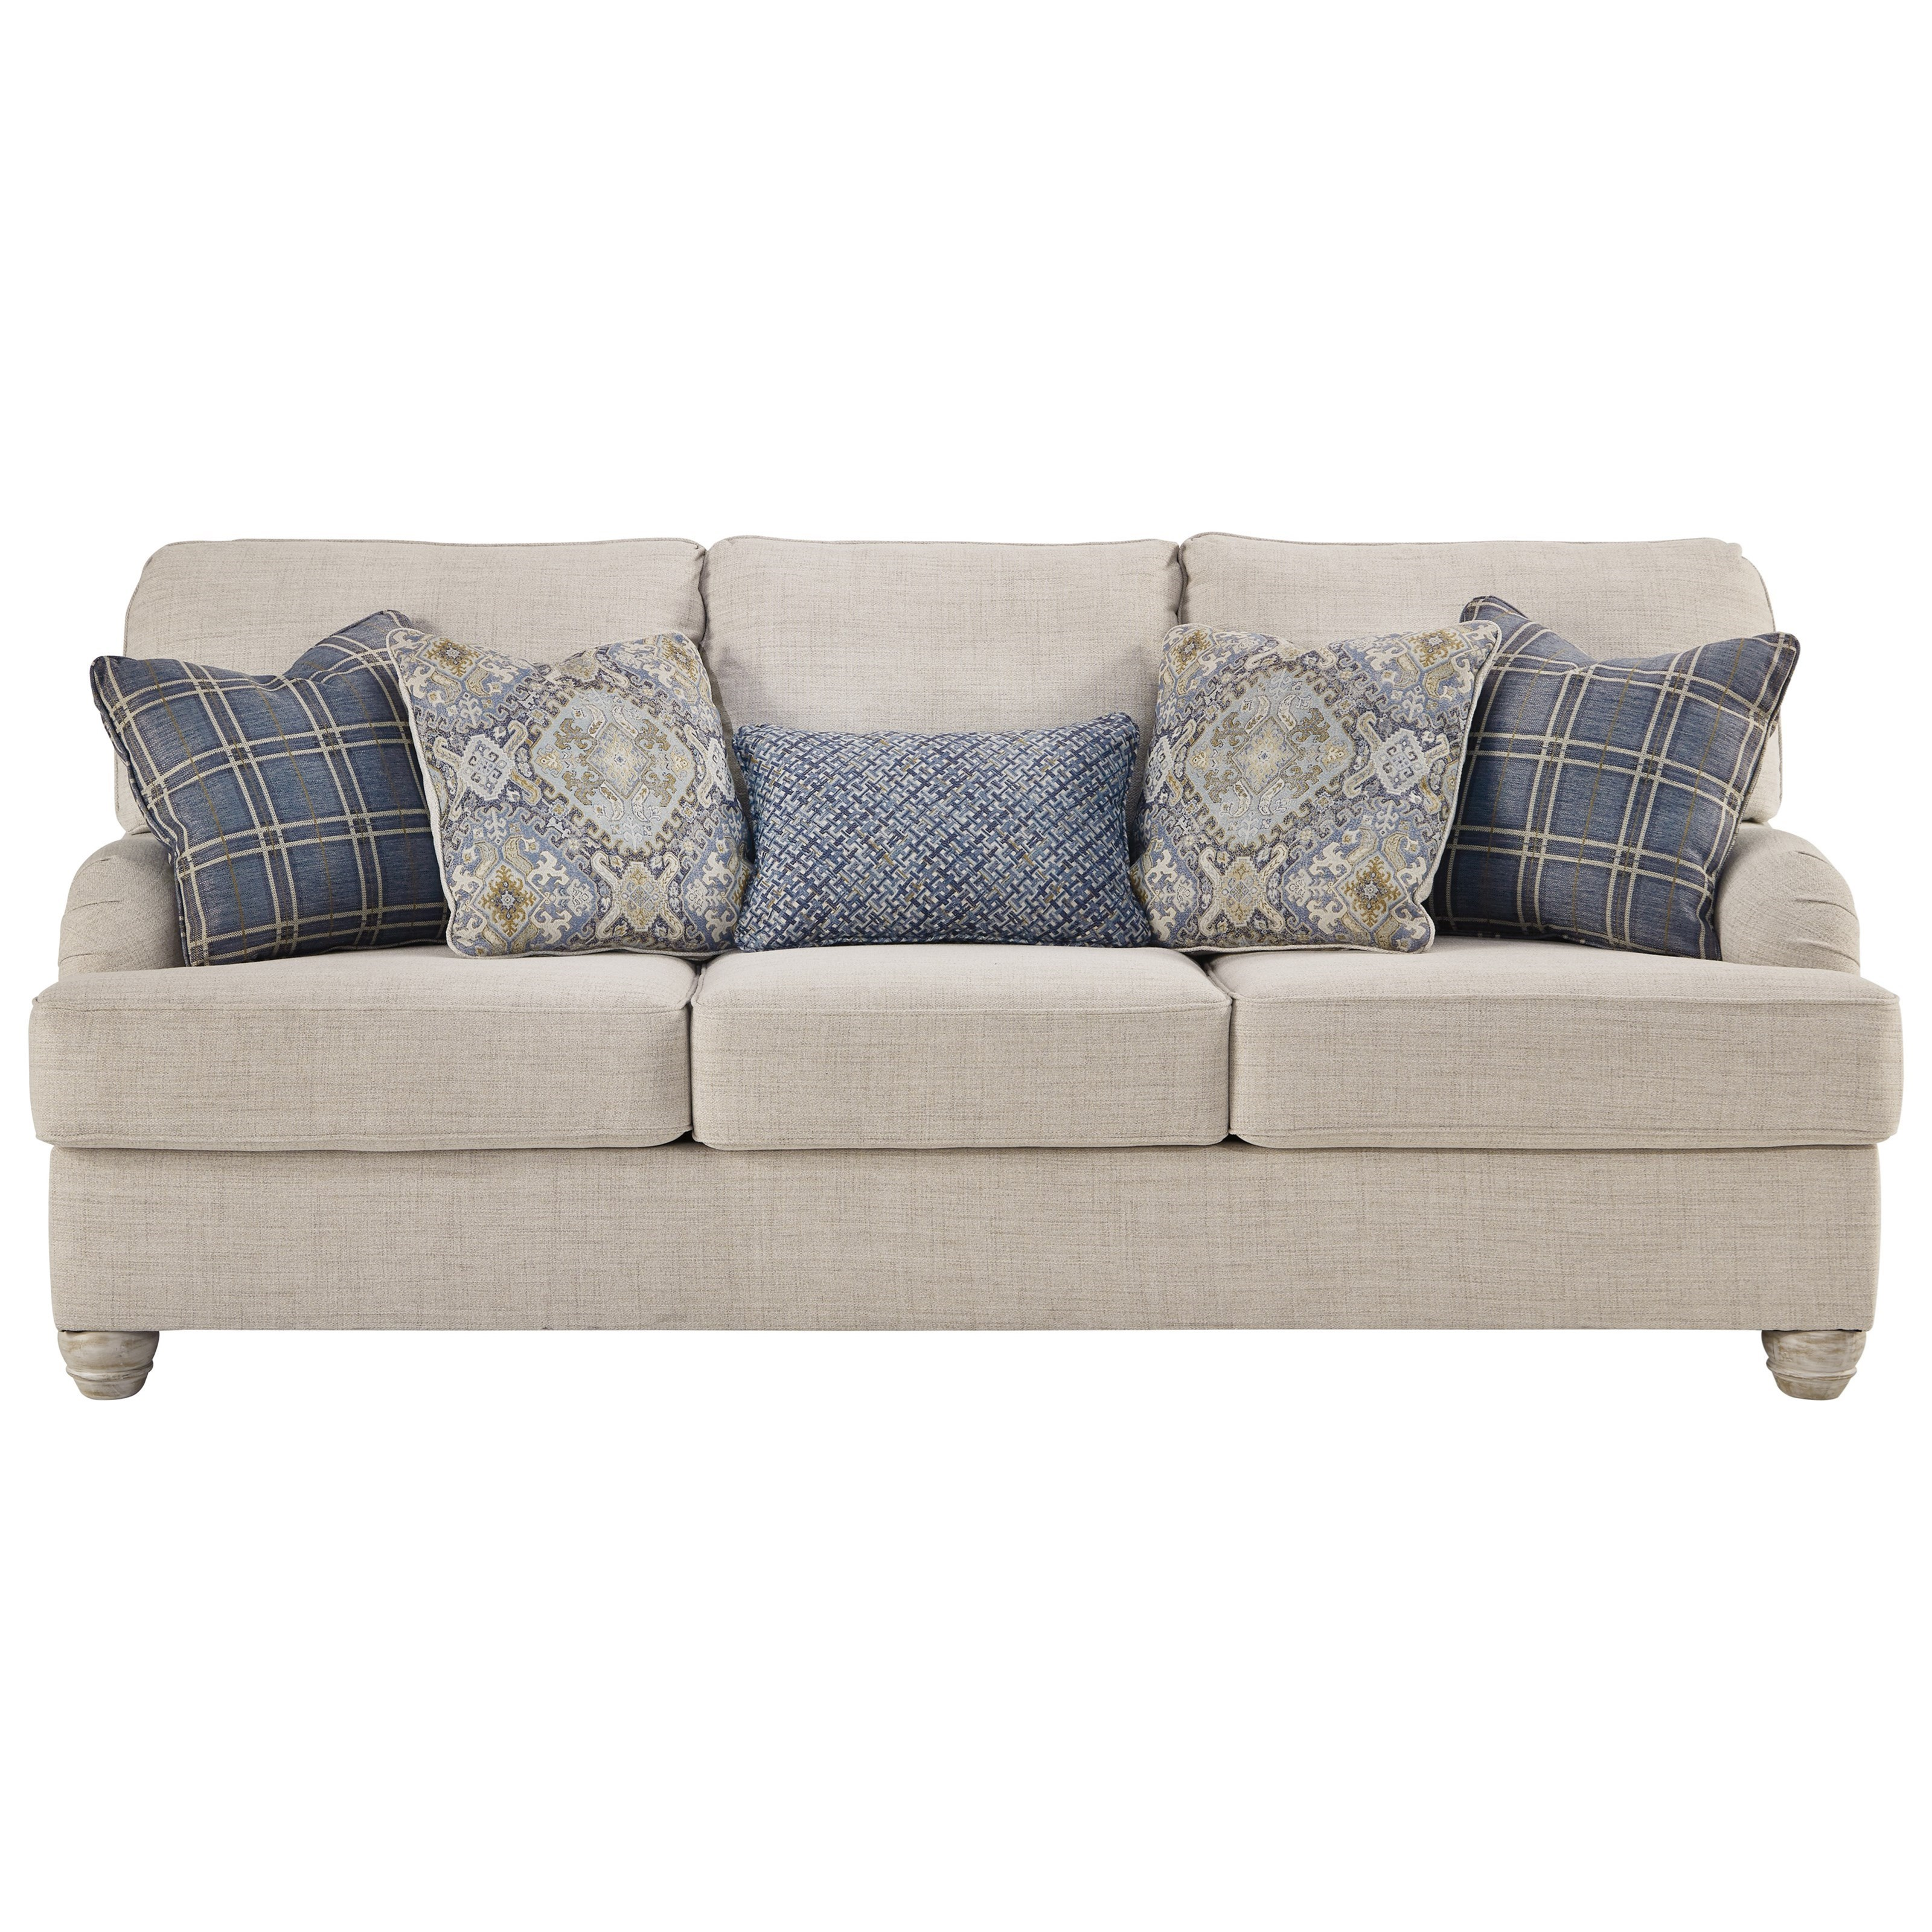 Benchcraft Traemore Queen Sofa Sleeper With English Arms